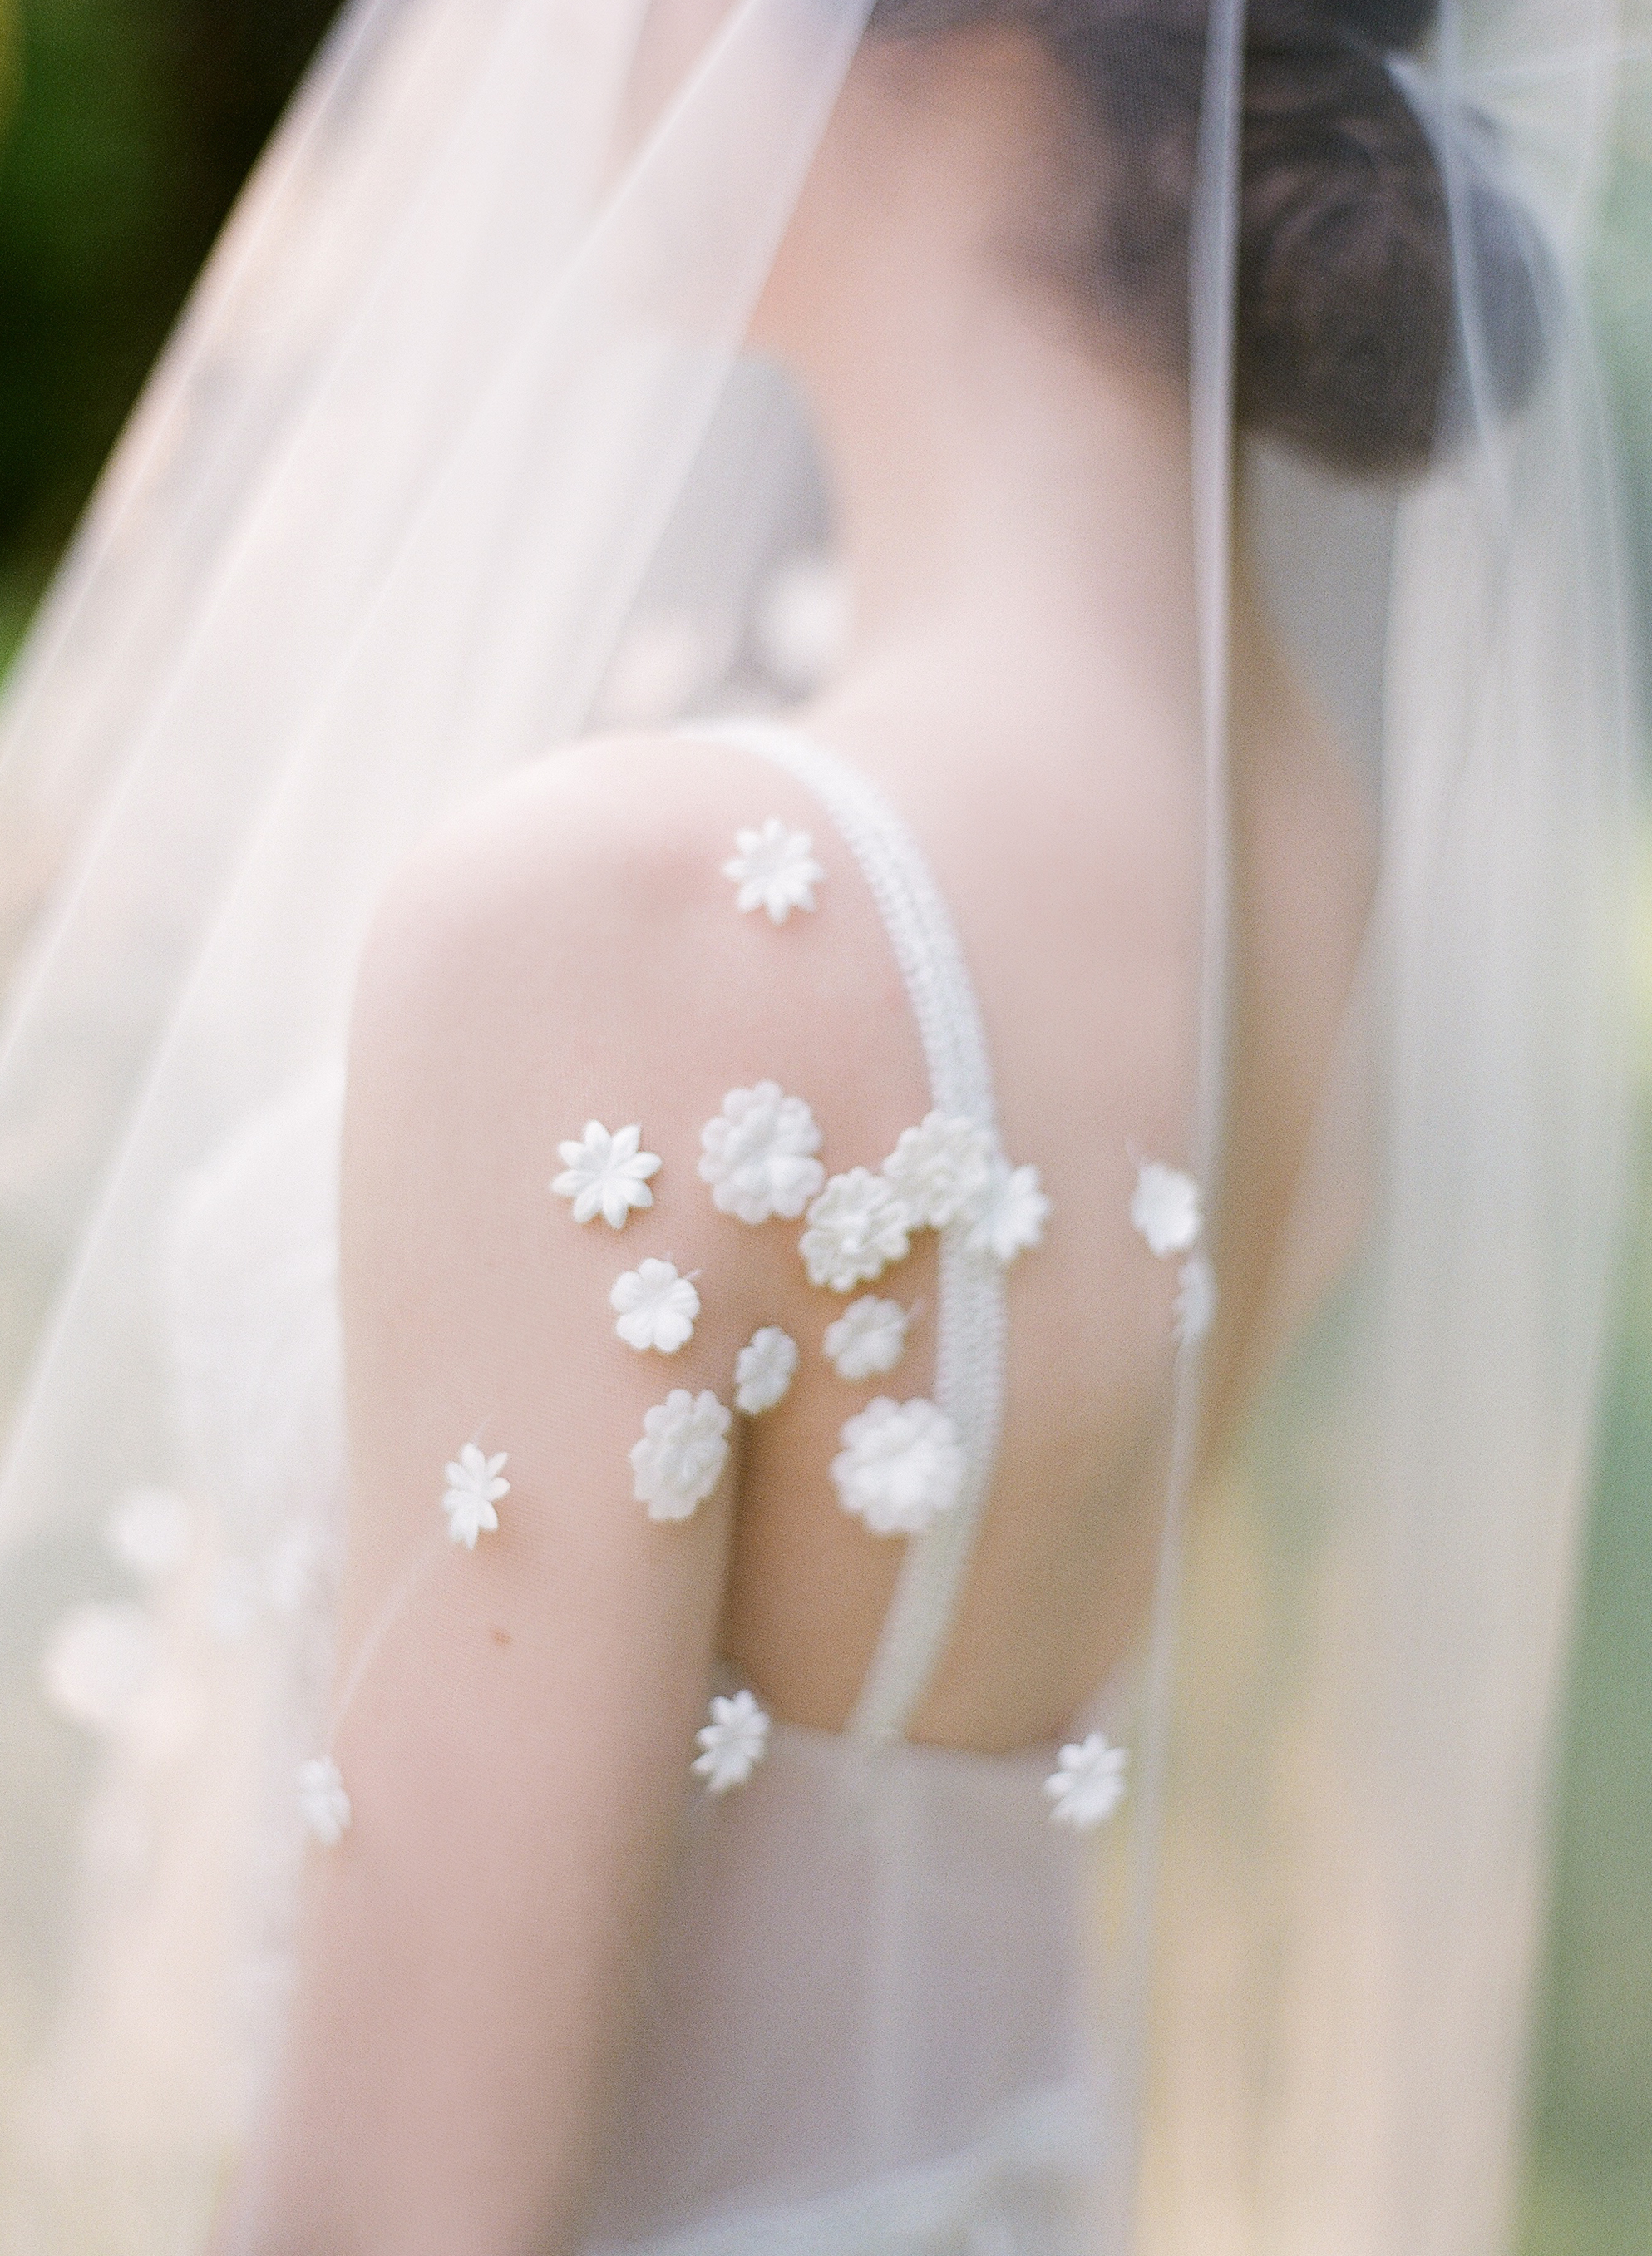 wedding veil with small floral appliqués